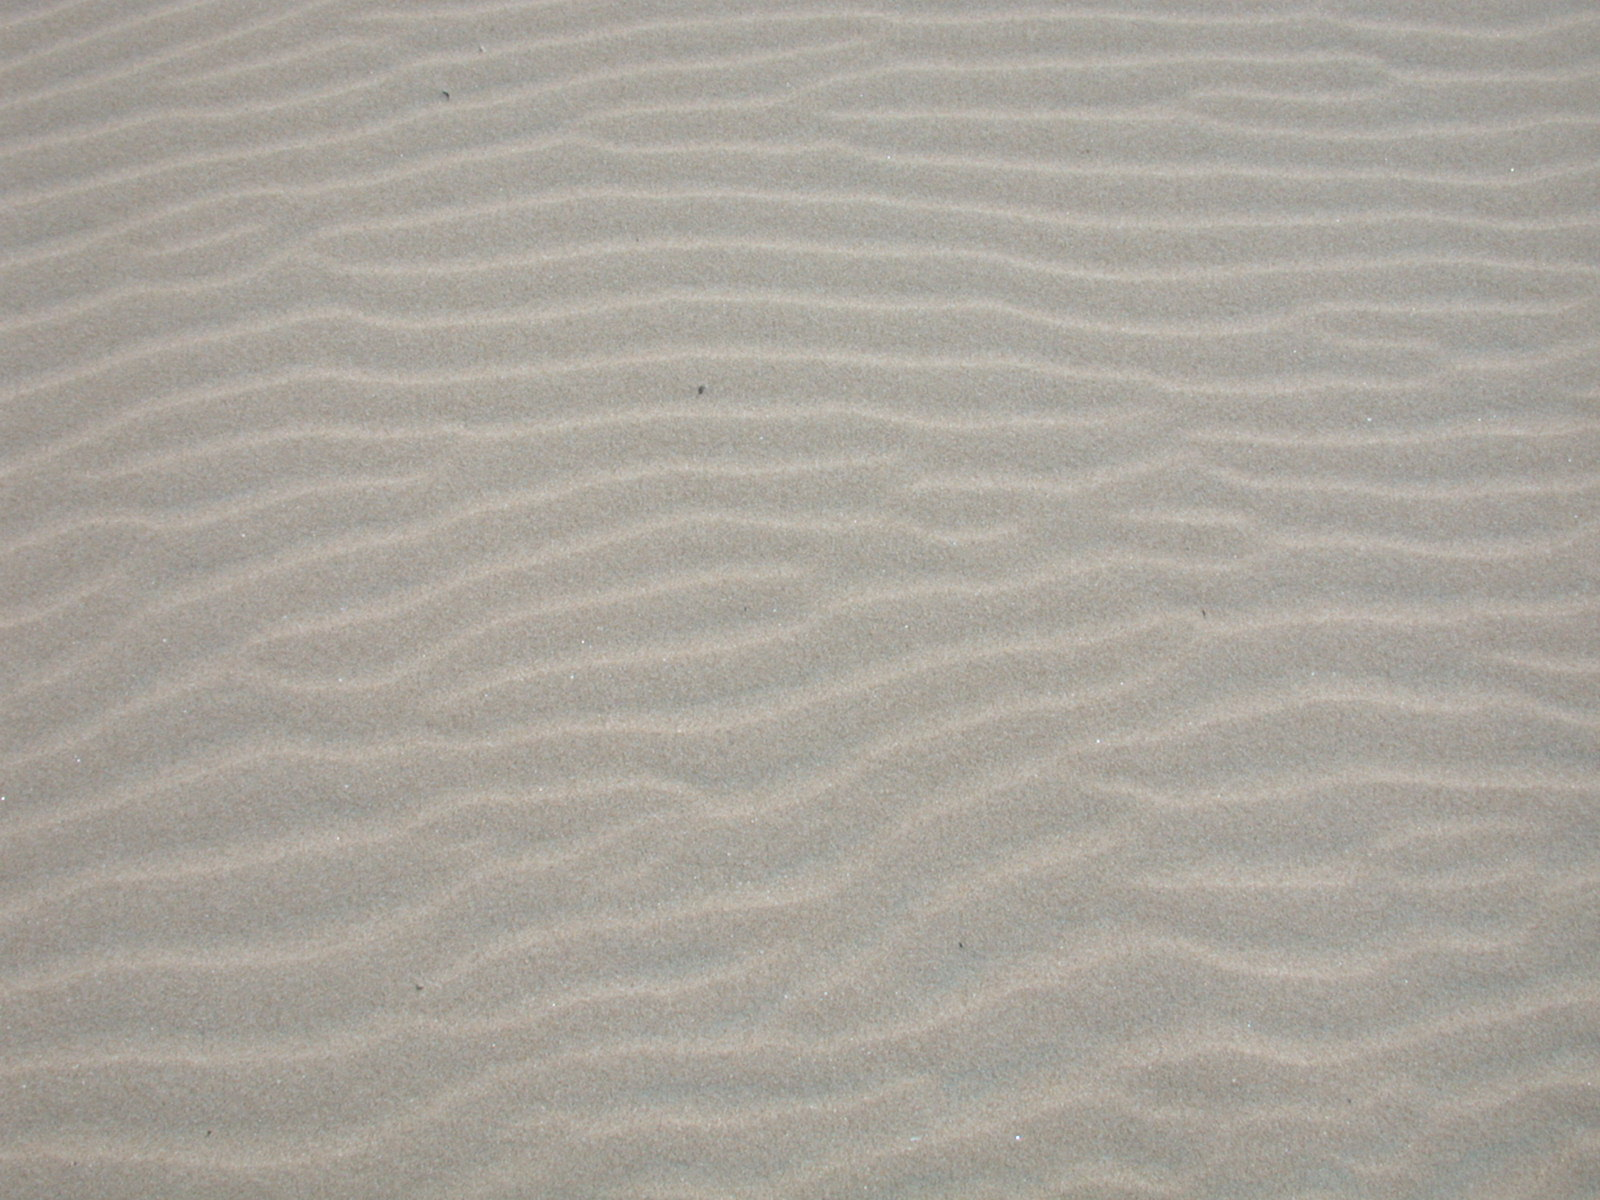 Image*After : photos :... Underwater Sand Texture